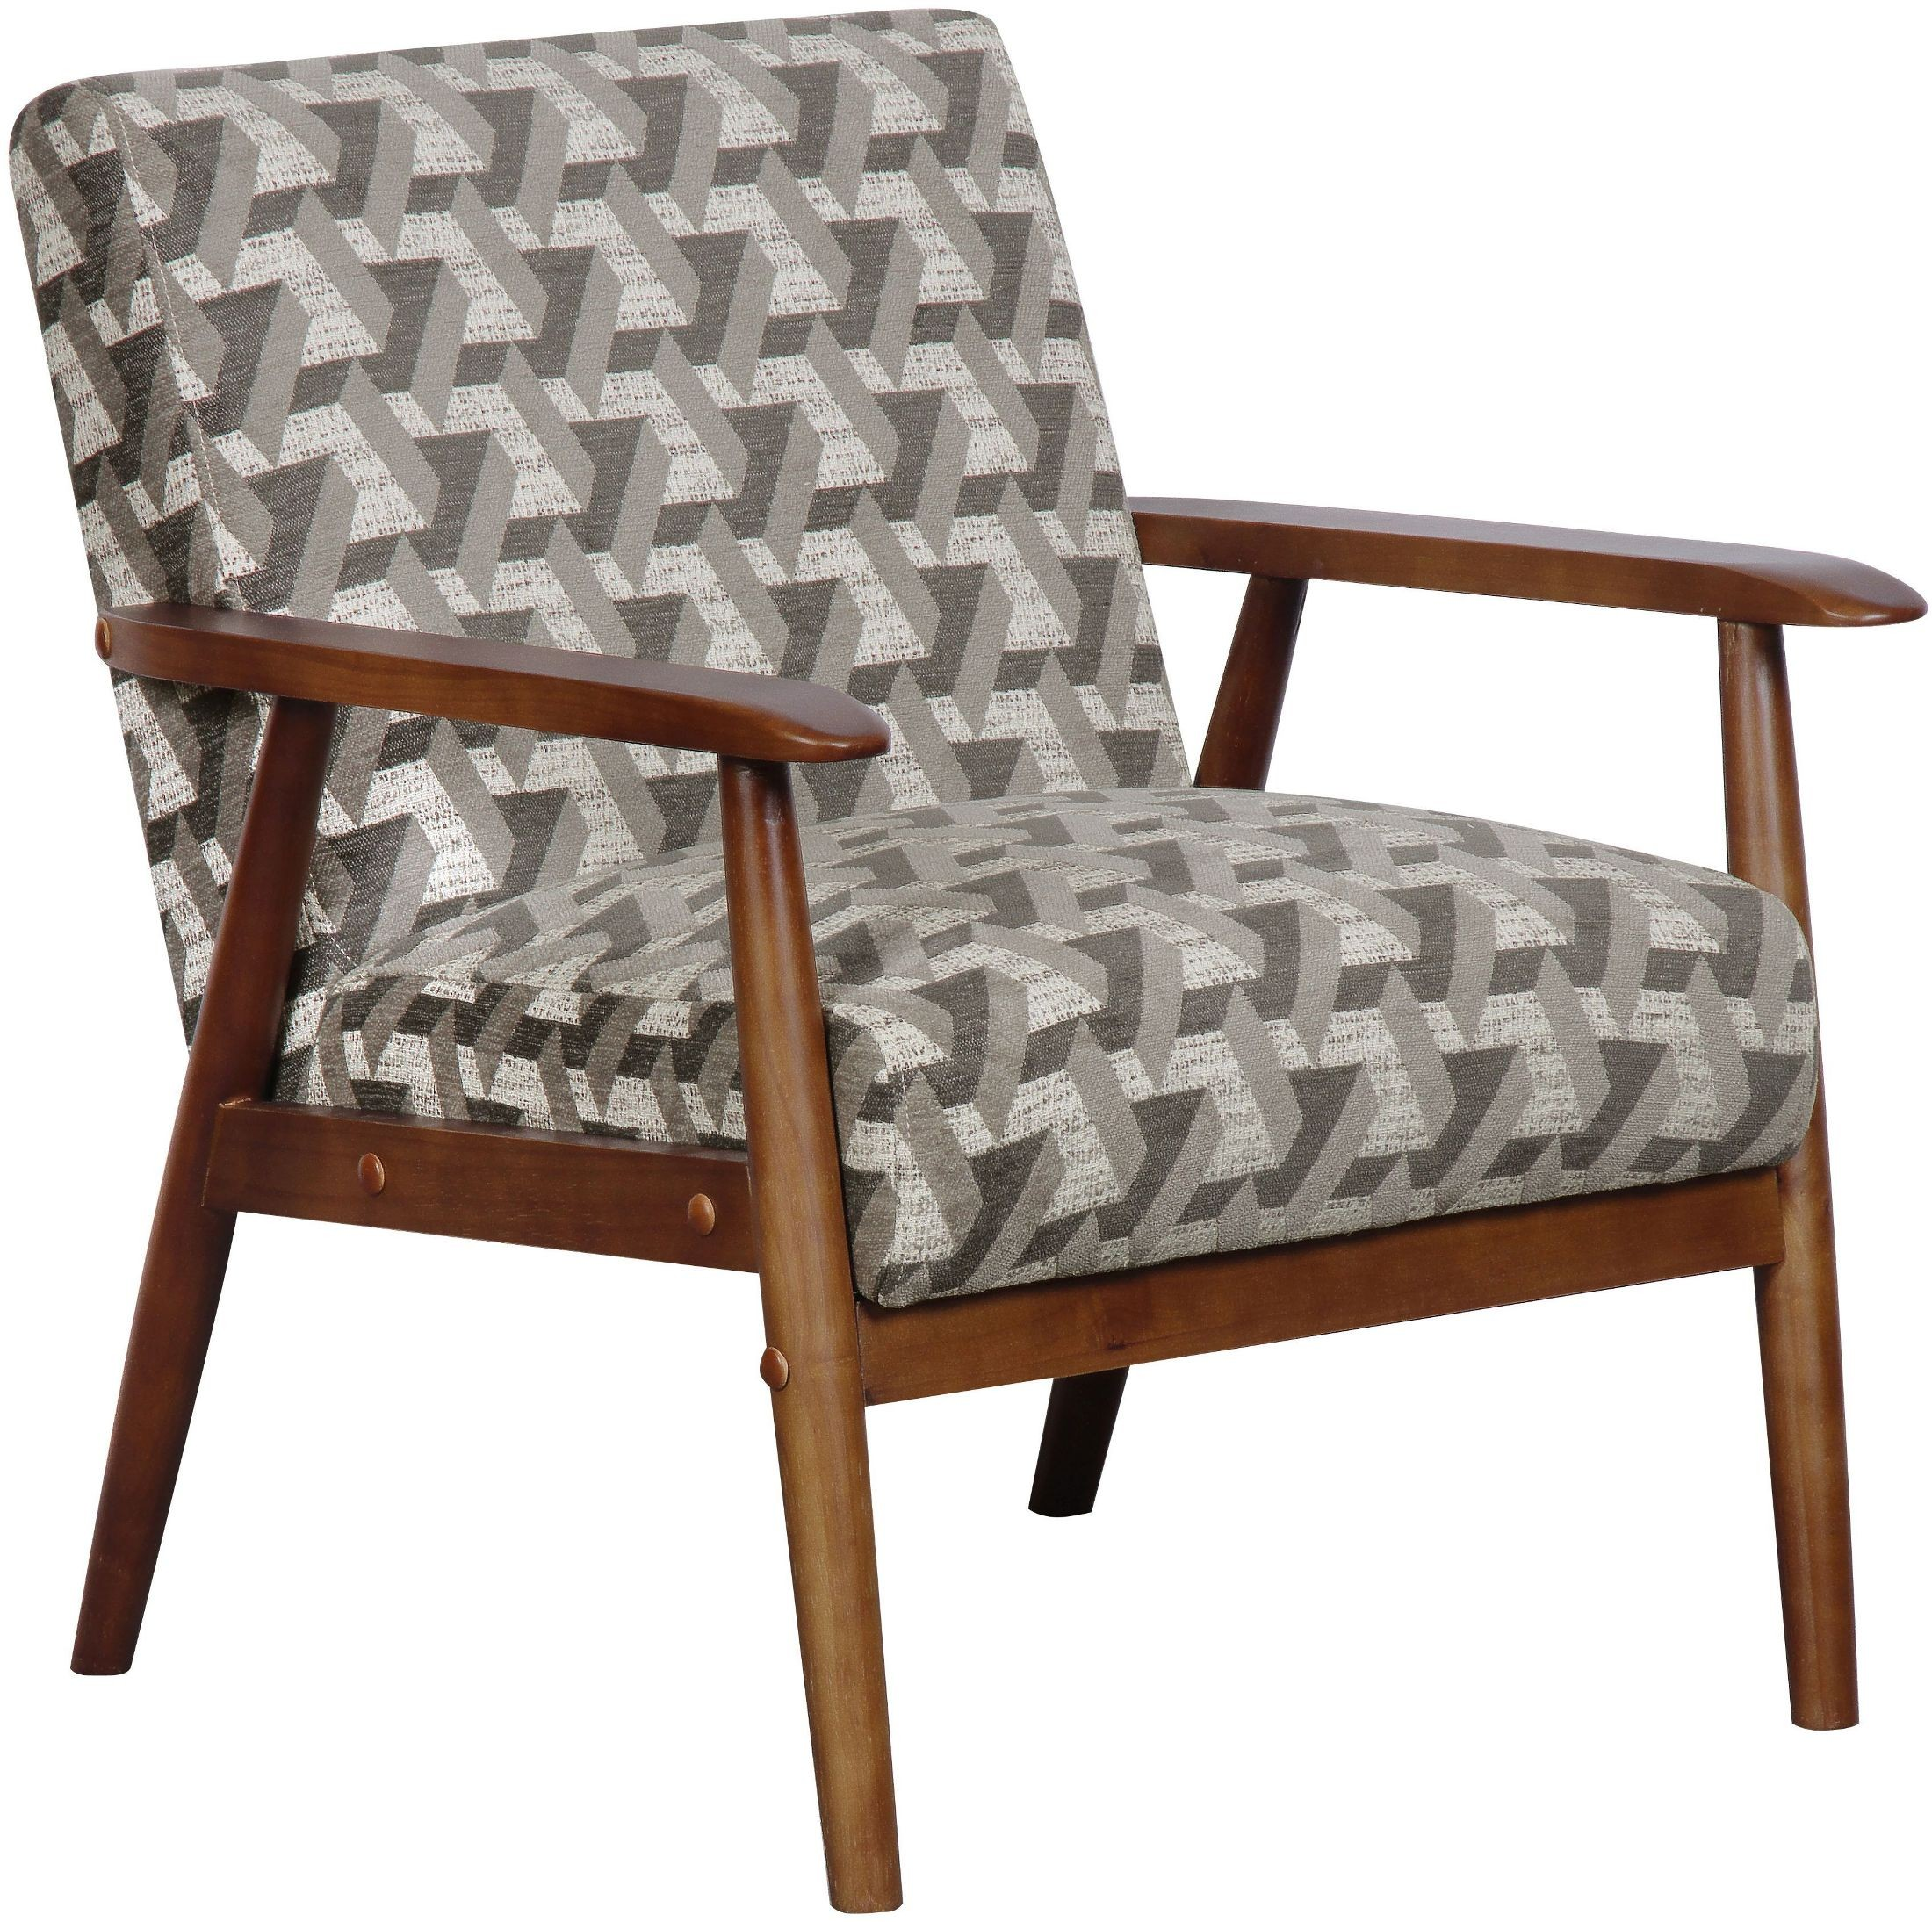 Prism flannel wood frame accent chair from pulaski for Timber frame accents